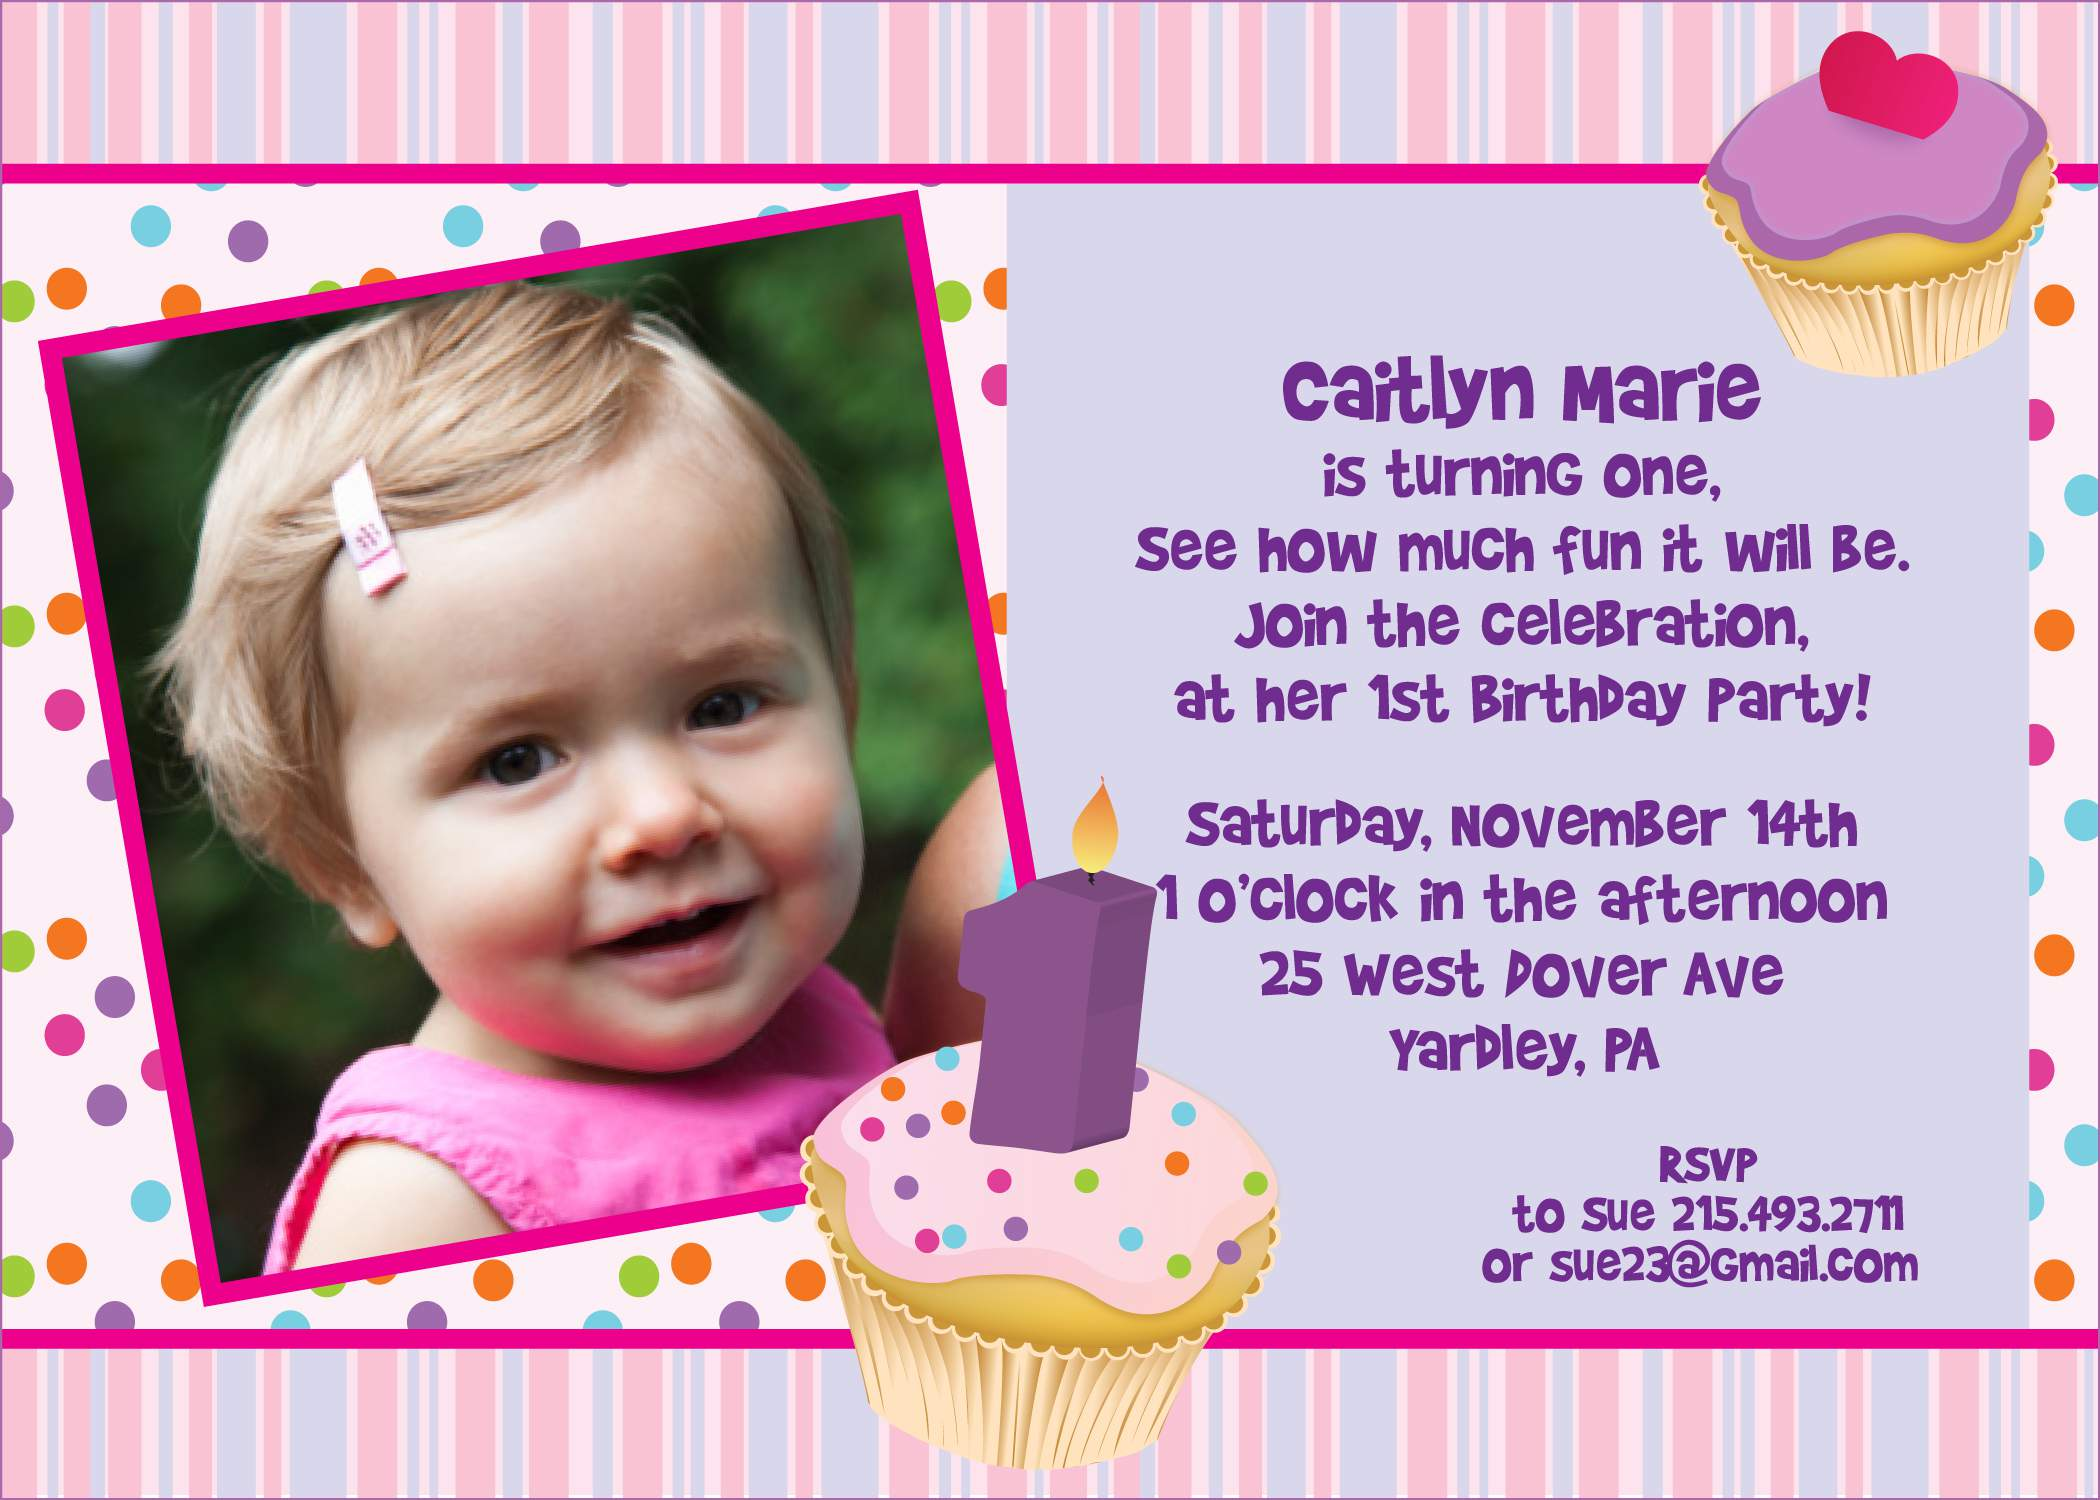 free 1st birthday invitation ecards ; first-birthday-ecard-invitation-free-1st-birthday-invitation-message-samples-and-get-inspiration-to-create-the-birthday-invitation-design-of-your-dreams-3